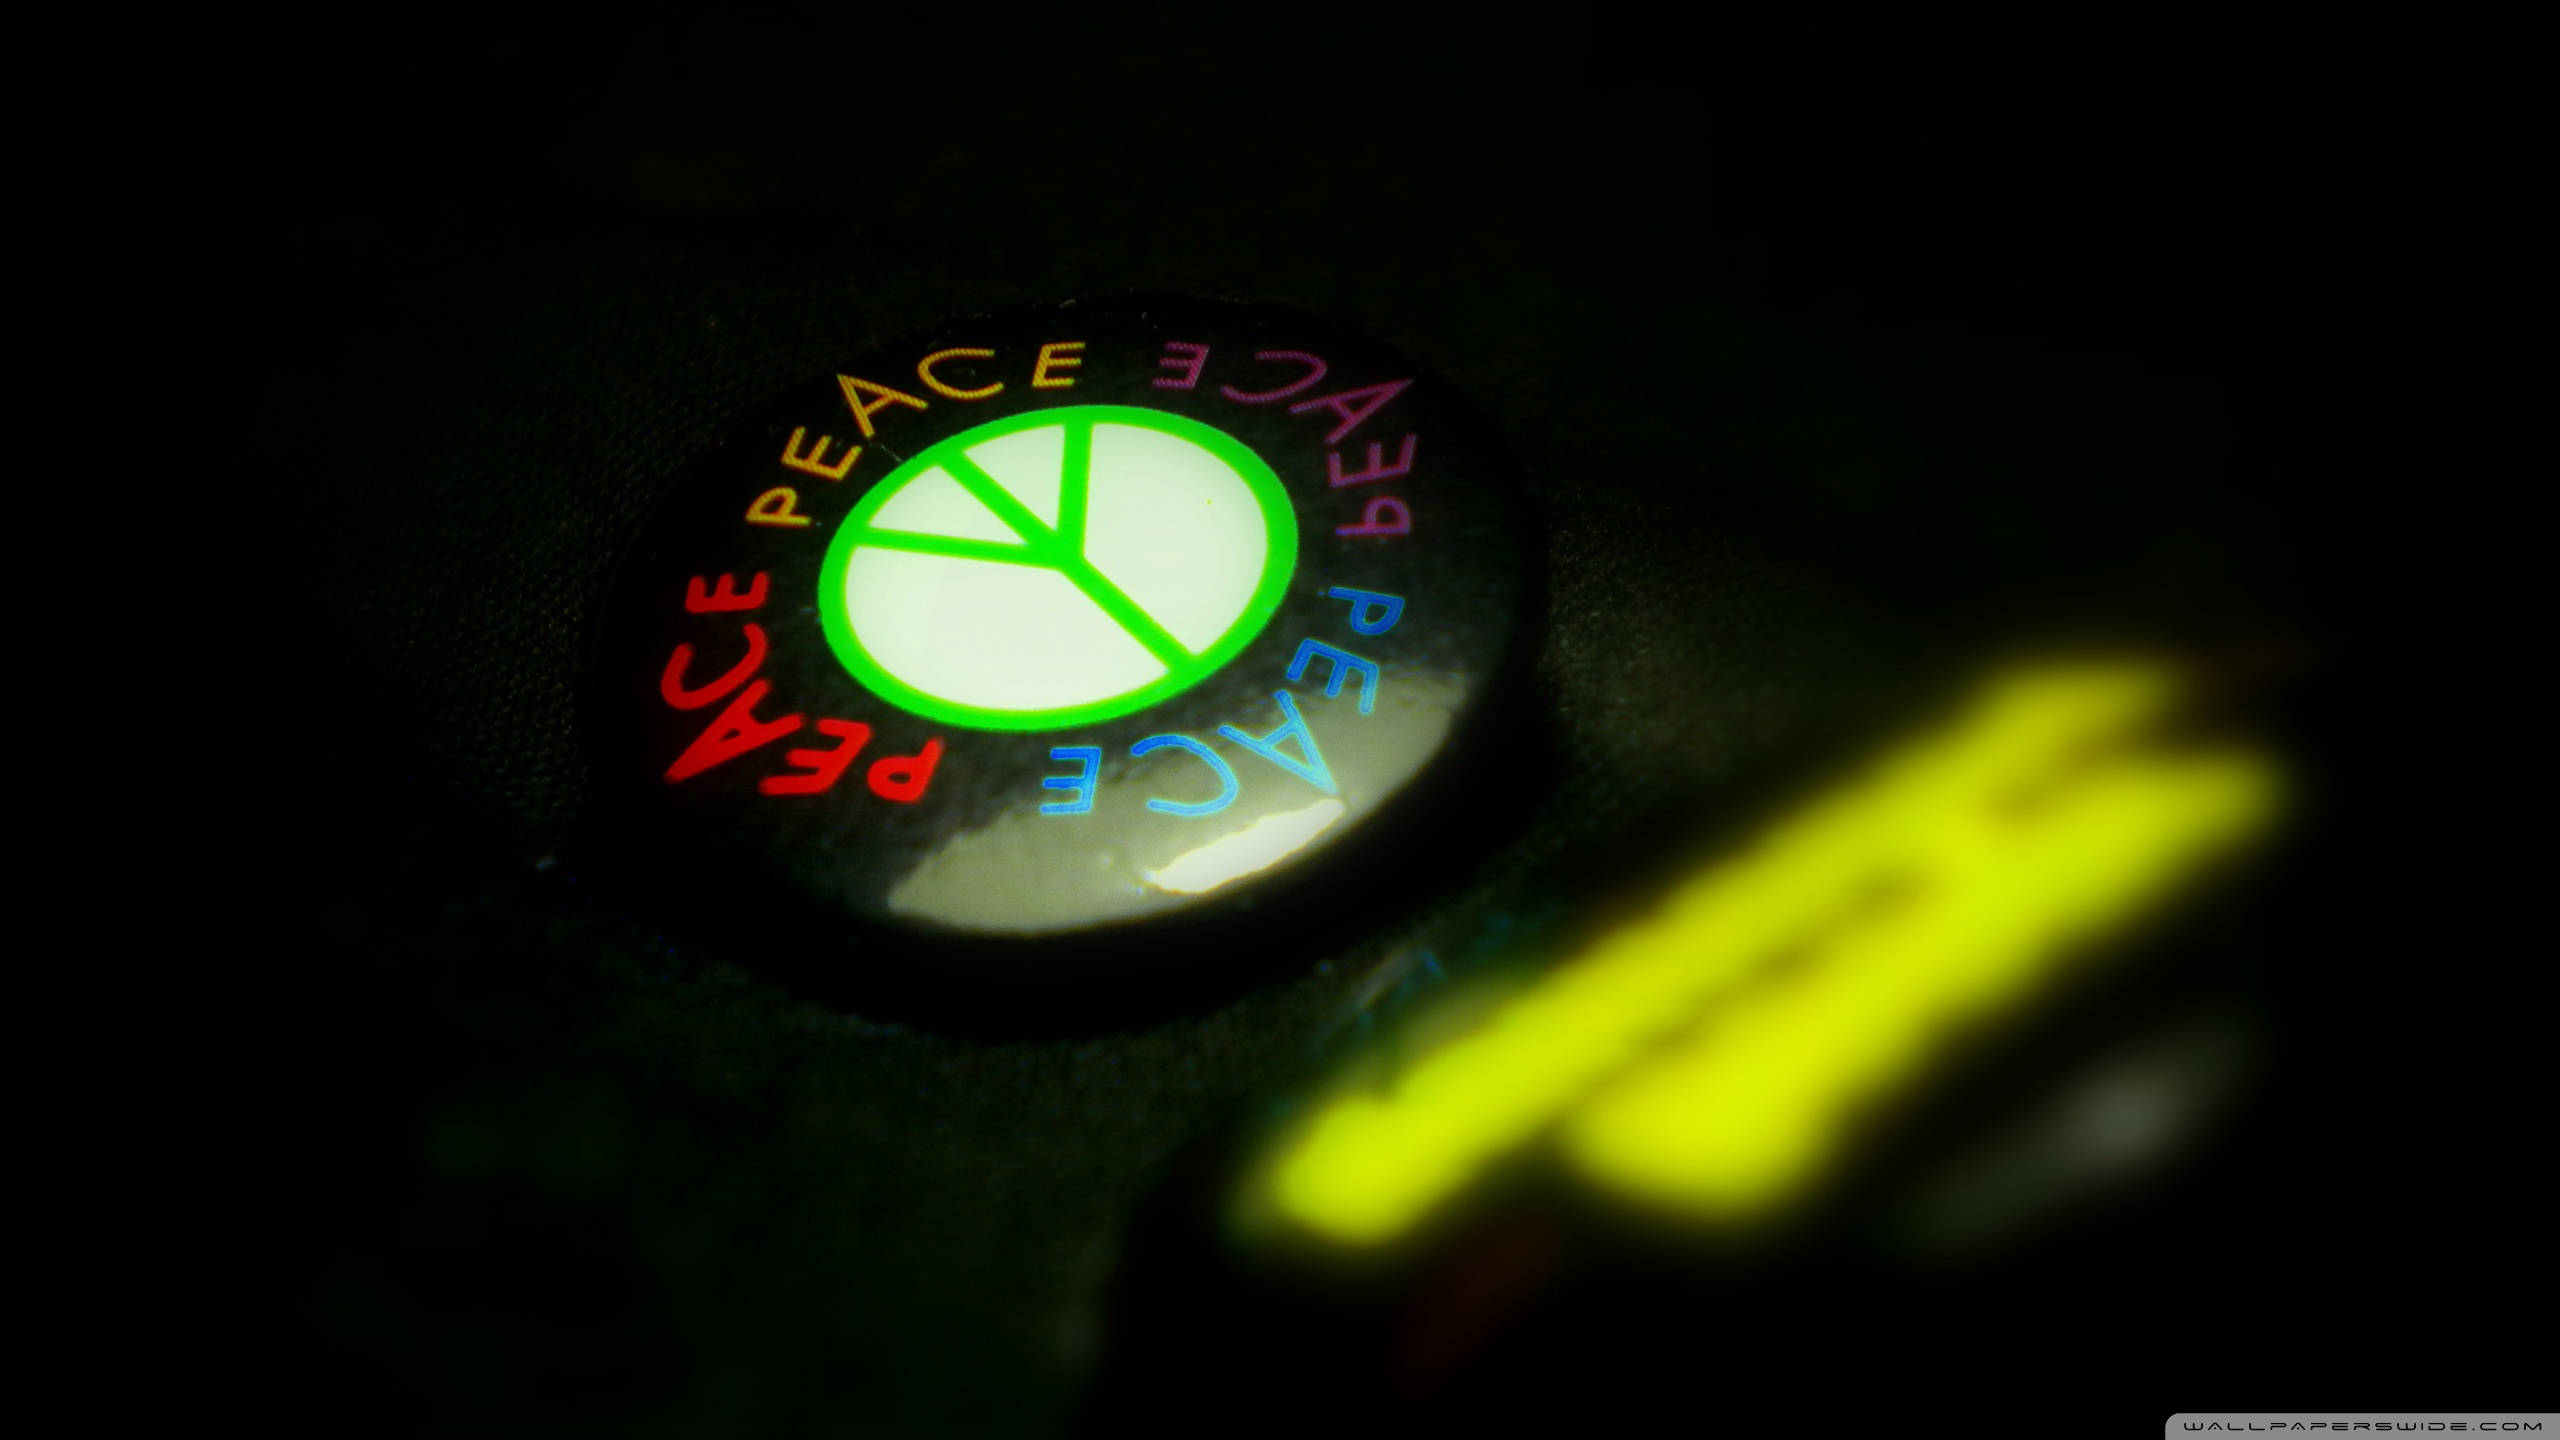 Standard - Peace Logo Hd 1080p , HD Wallpaper & Backgrounds